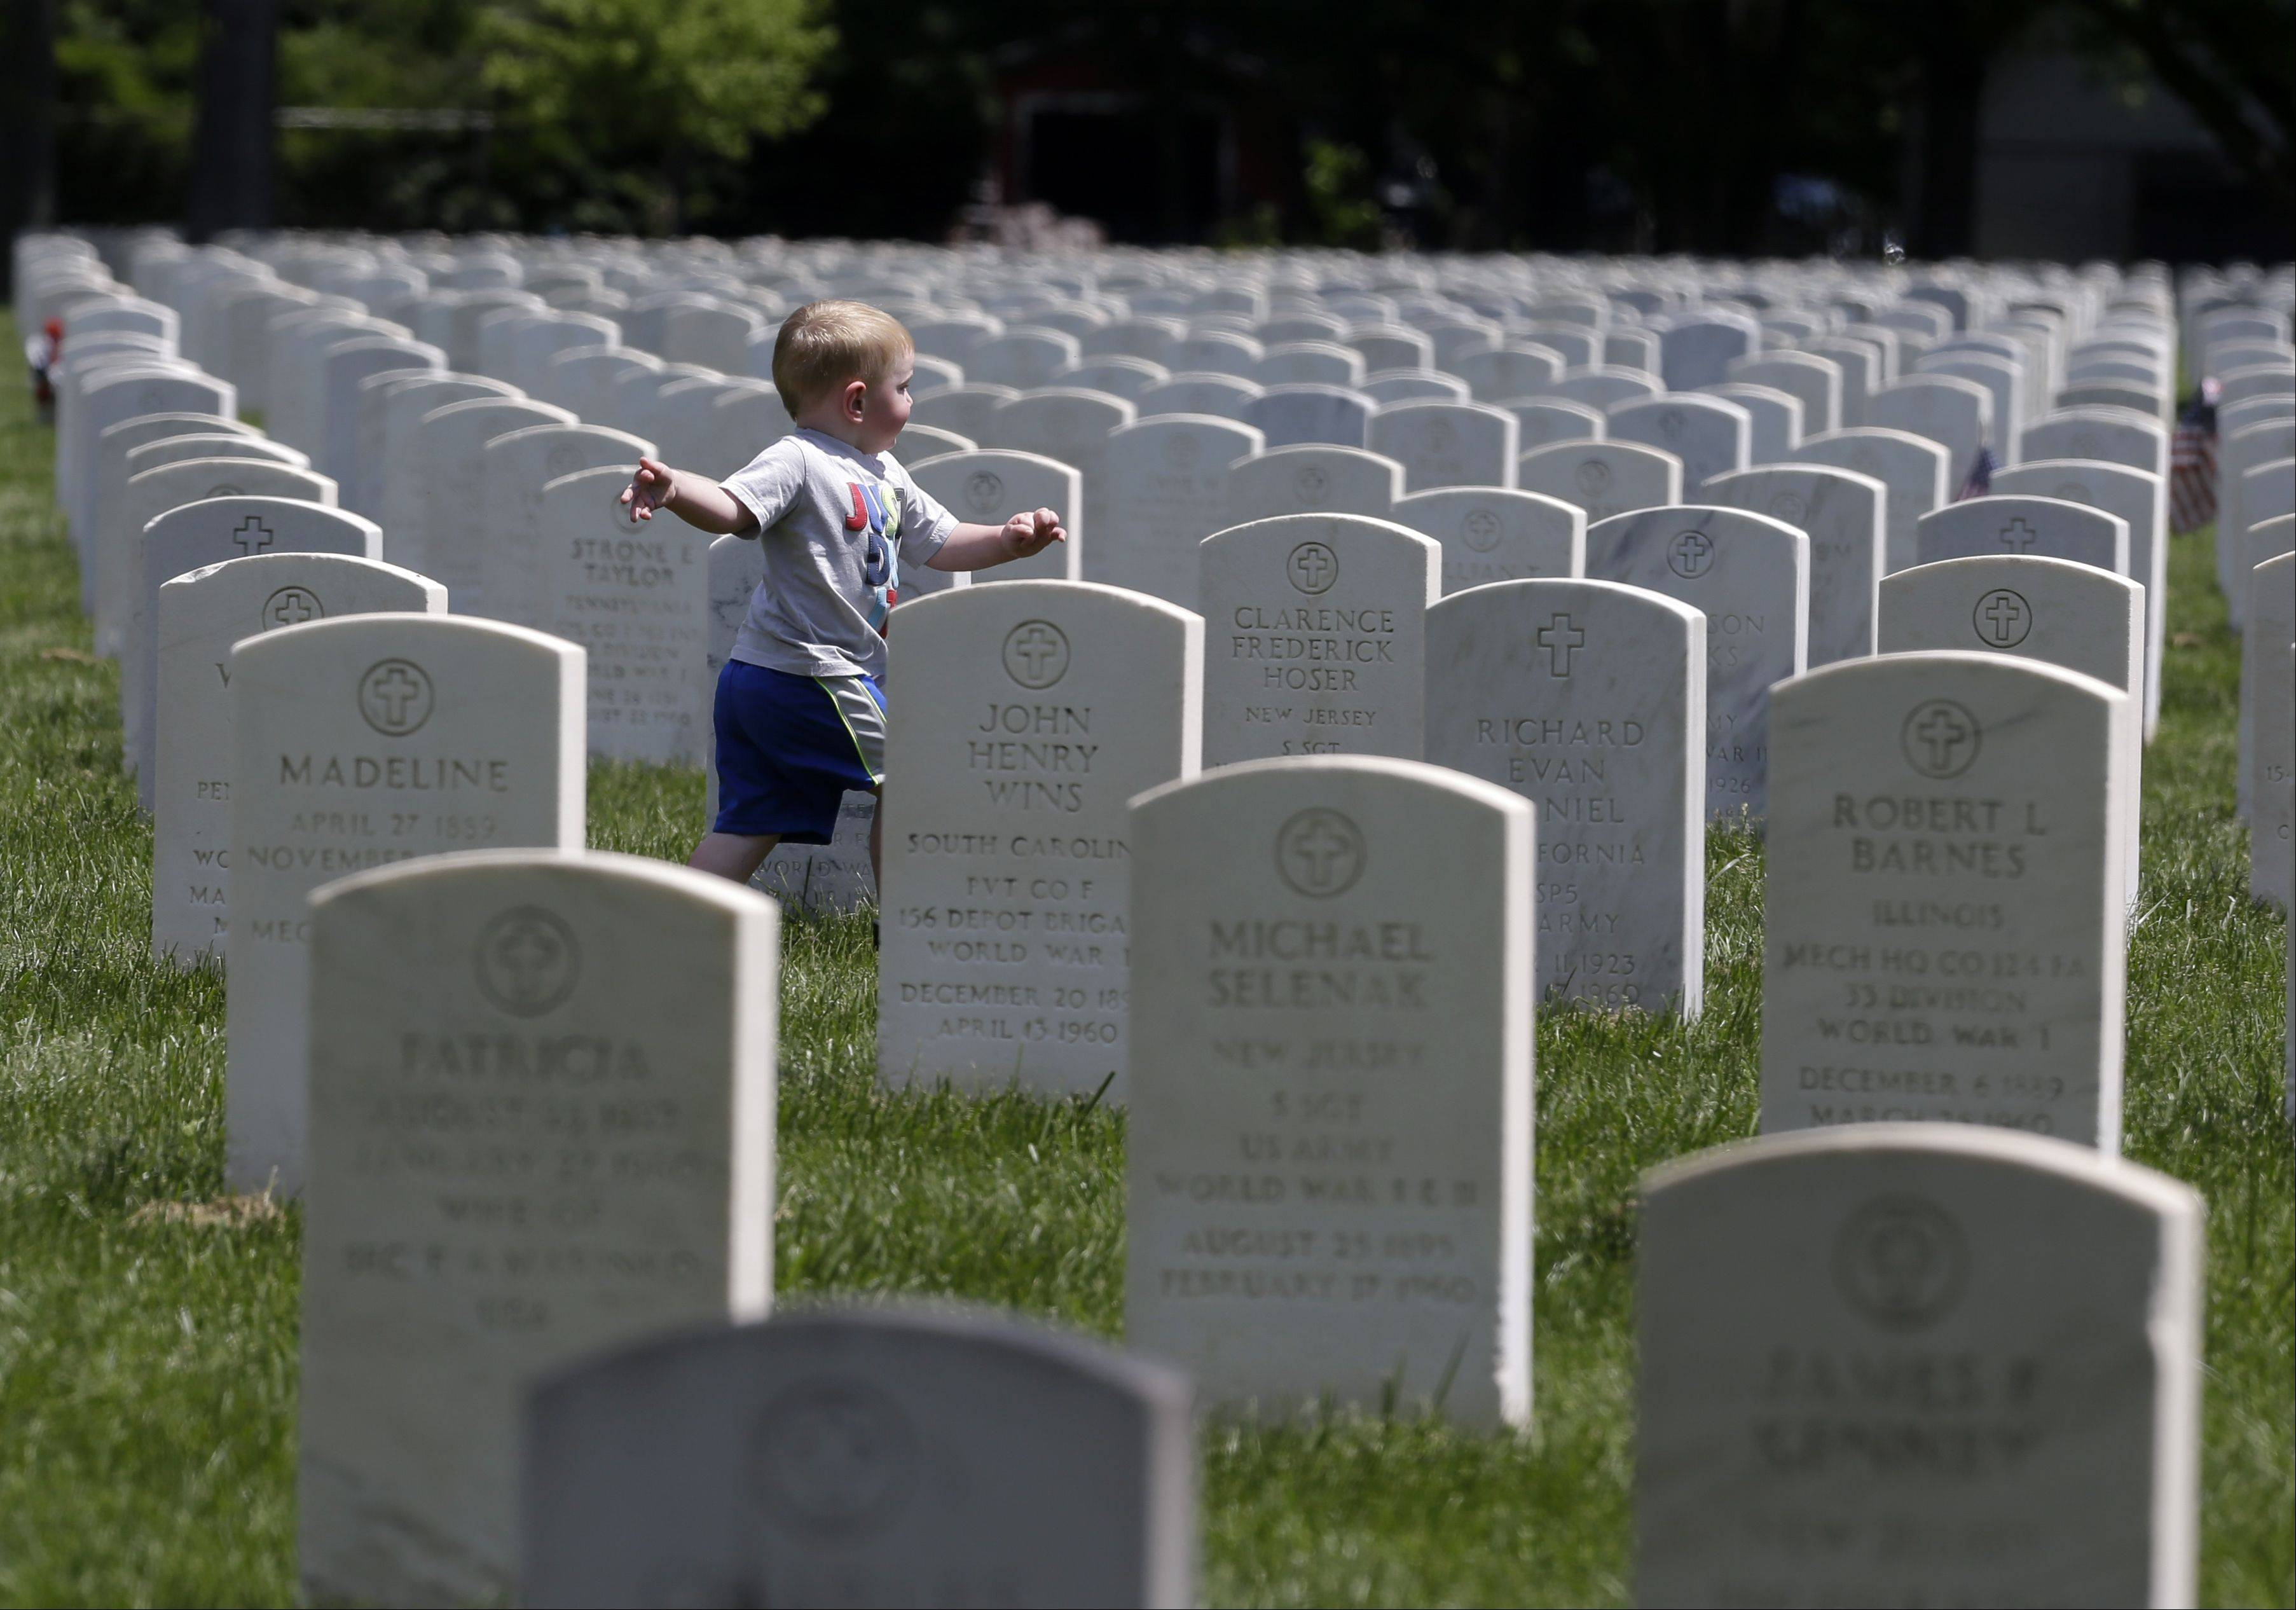 Matthew McGinley, 2, of Philadelphia, Pa., runs on at the Beverly National Cemetery in Beverly, N.J., on Memorial Day, Monday, May 27, 2013, as his family visits the gravesite of his great-grandfather, a World War I veteran.